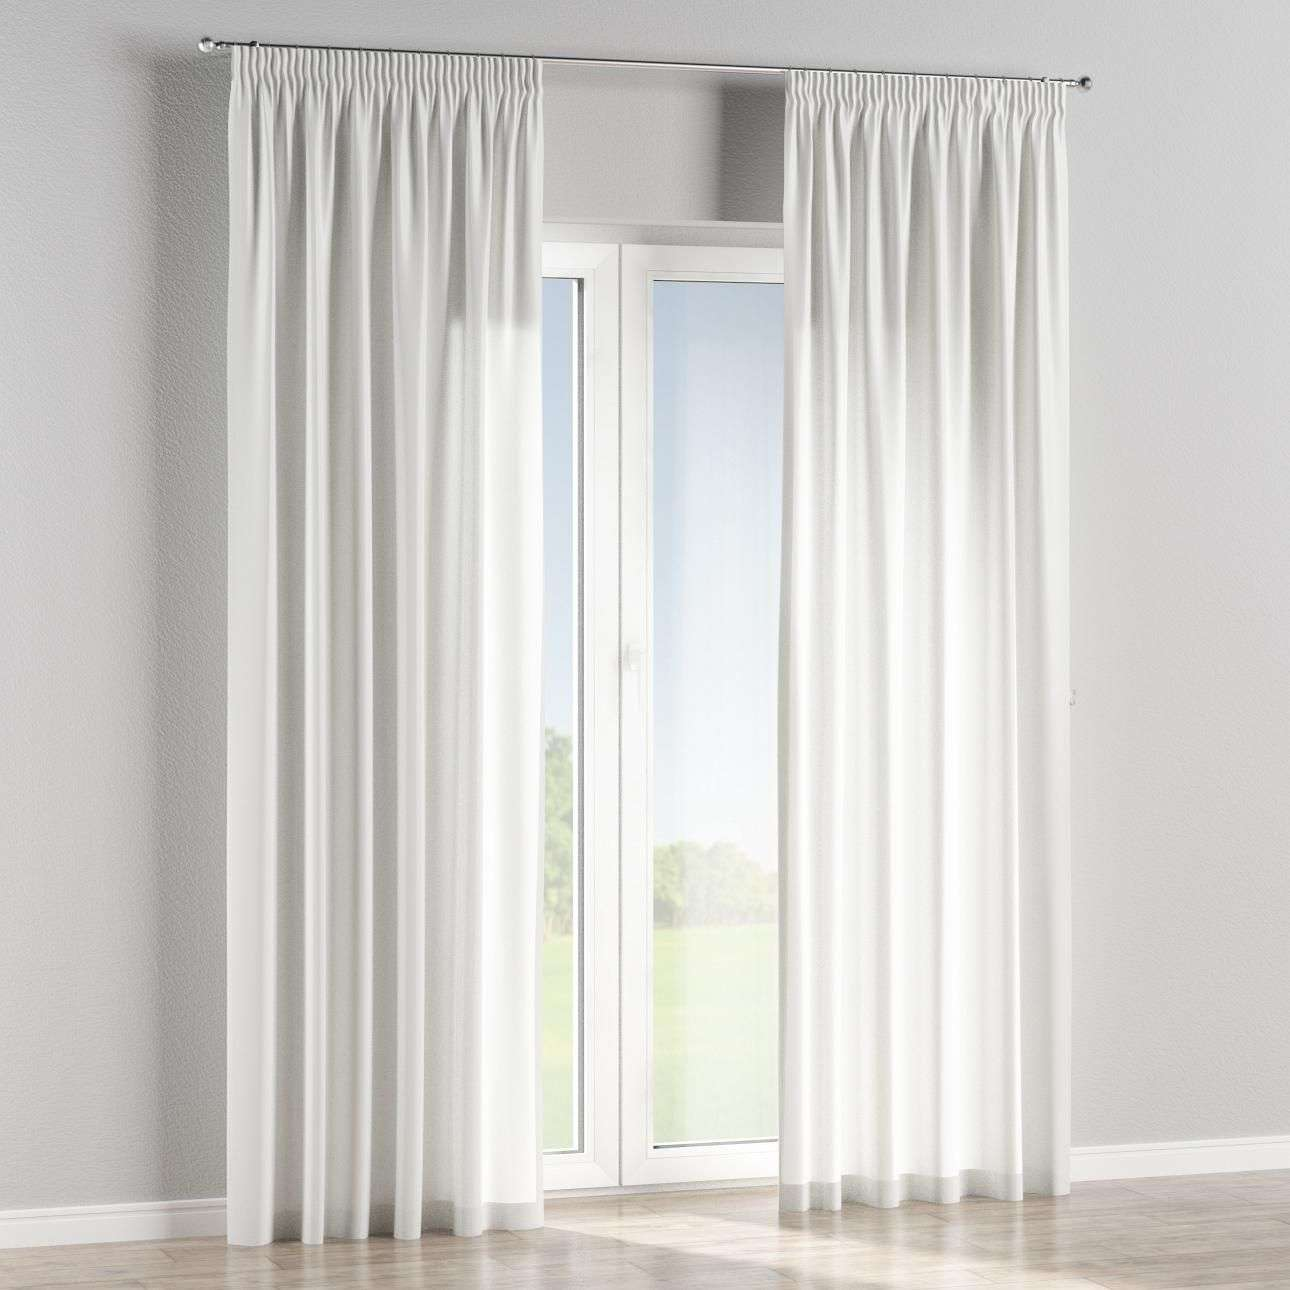 Pencil pleat lined curtains in collection Mirella, fabric: 141-13